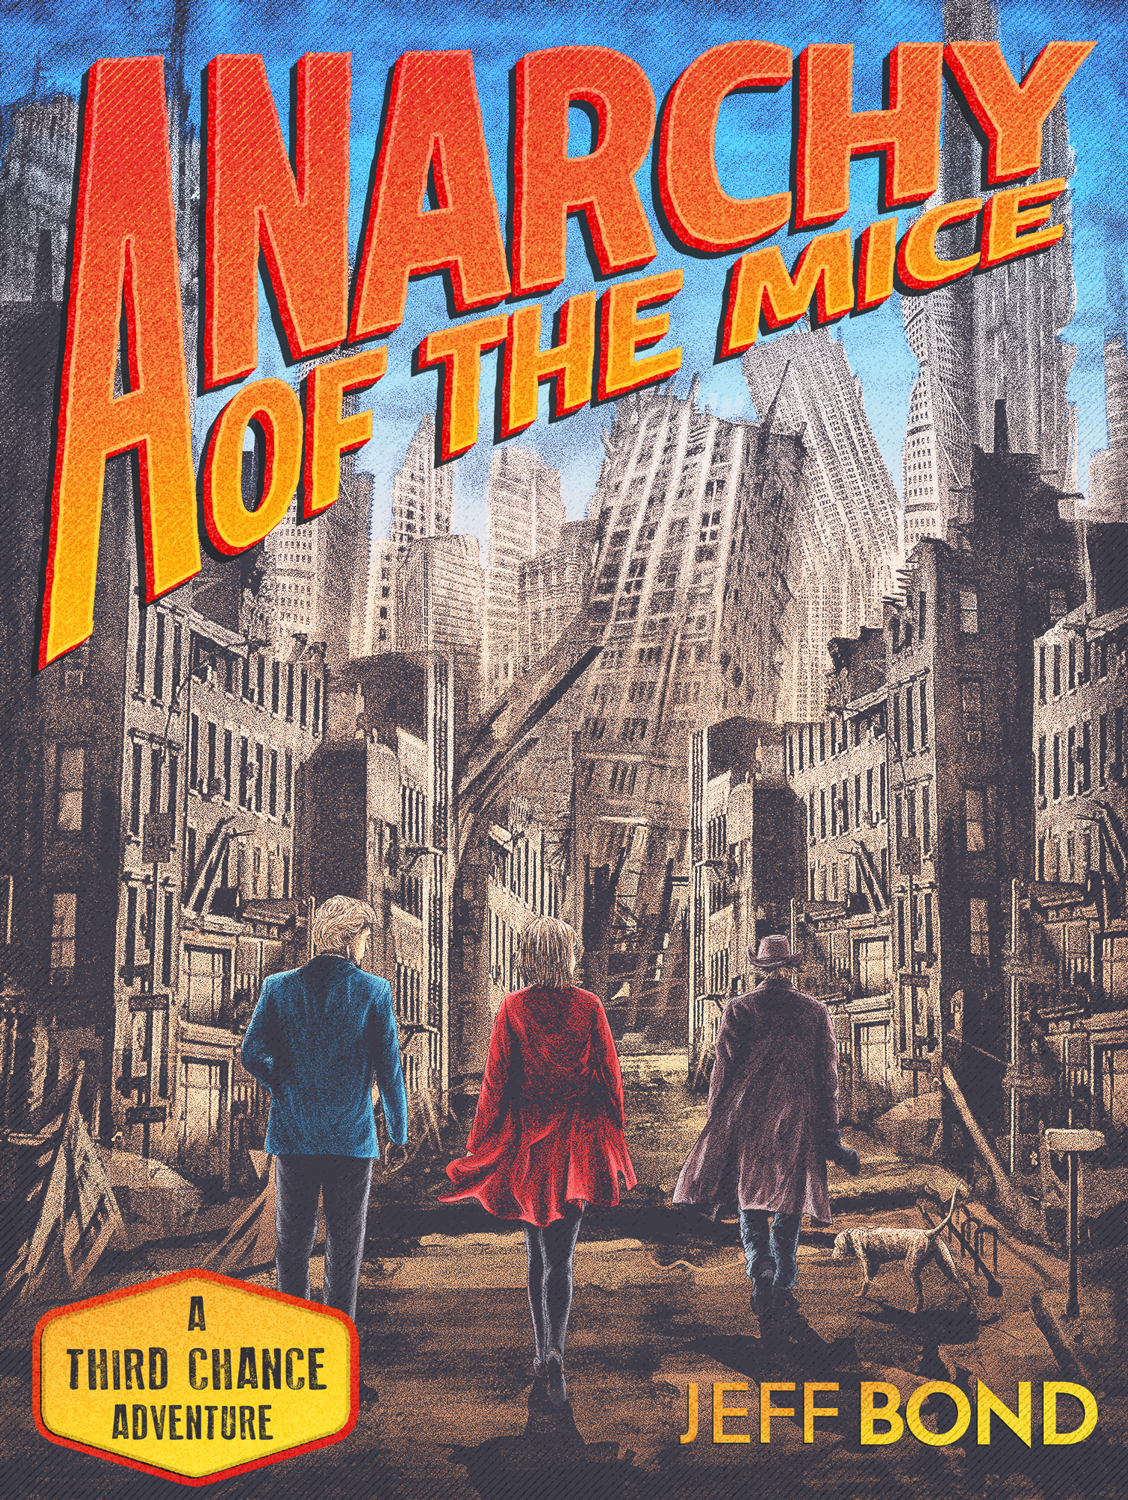 Pulp-style throwback cover for action-adventure novel